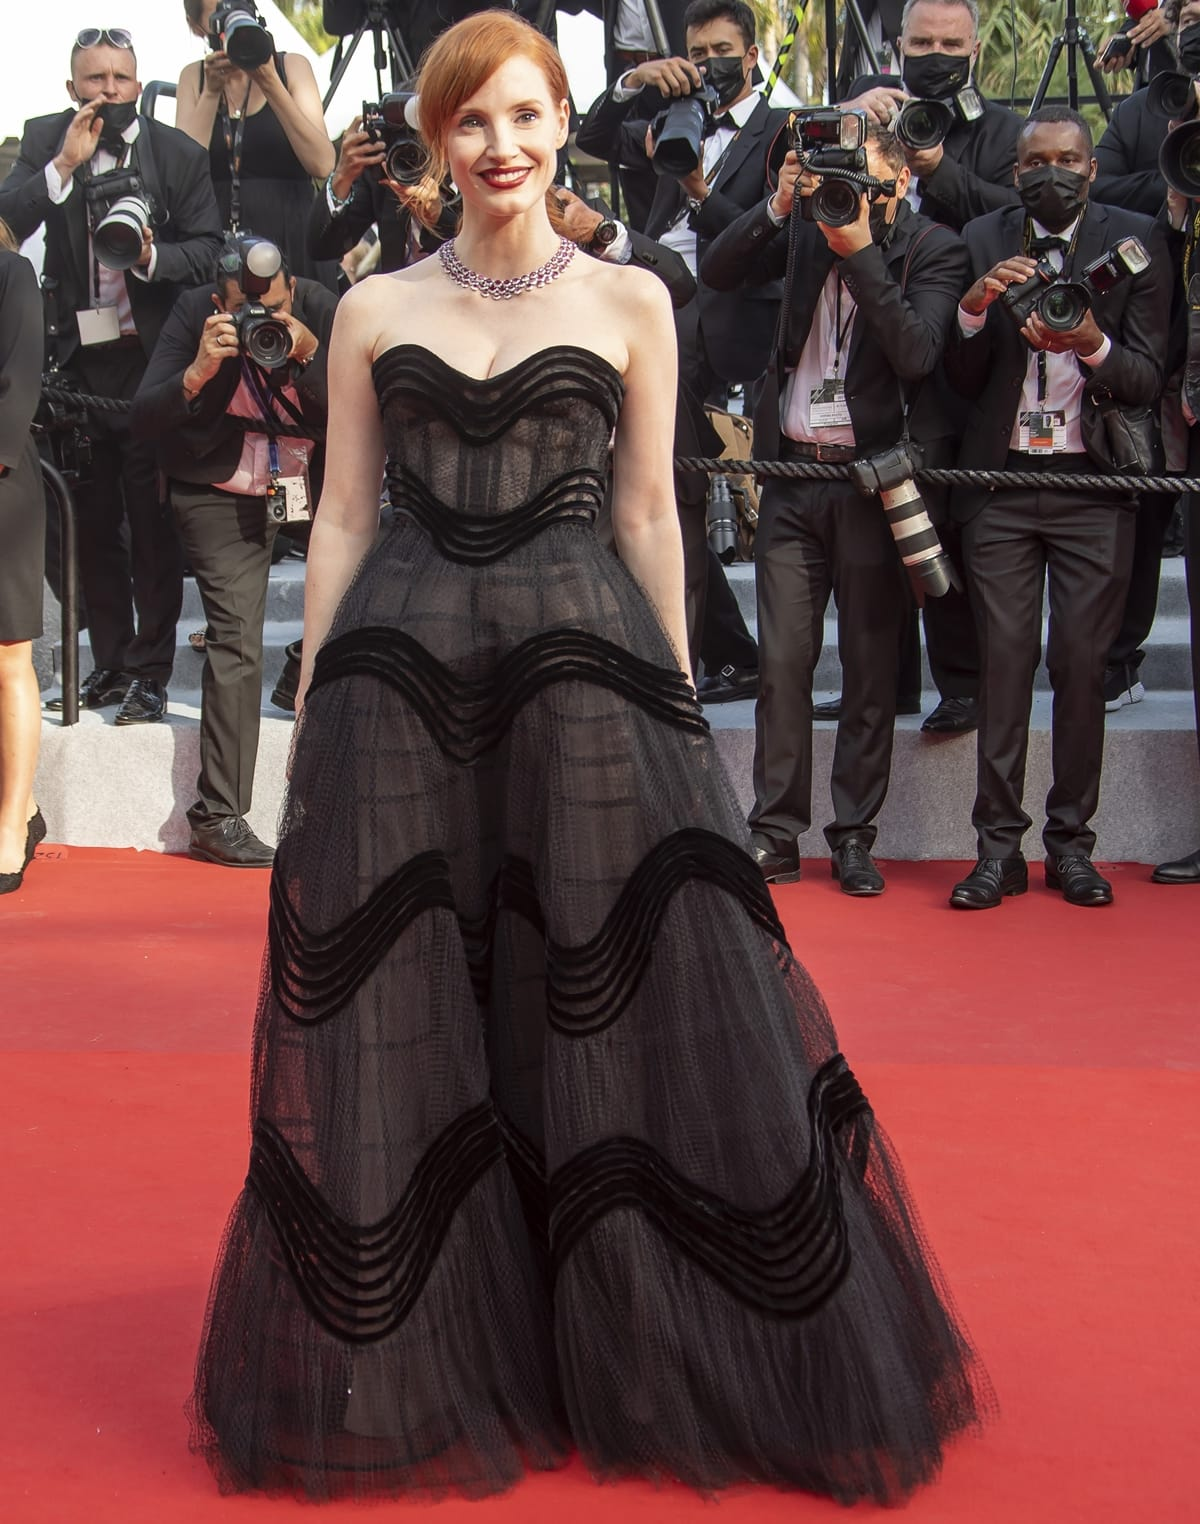 Jessica Chastain makes a grand entrance in a black Christian Dior Fall 2019 Haute Couture dress at the opening ceremony of the 2021 Cannes Film Festival